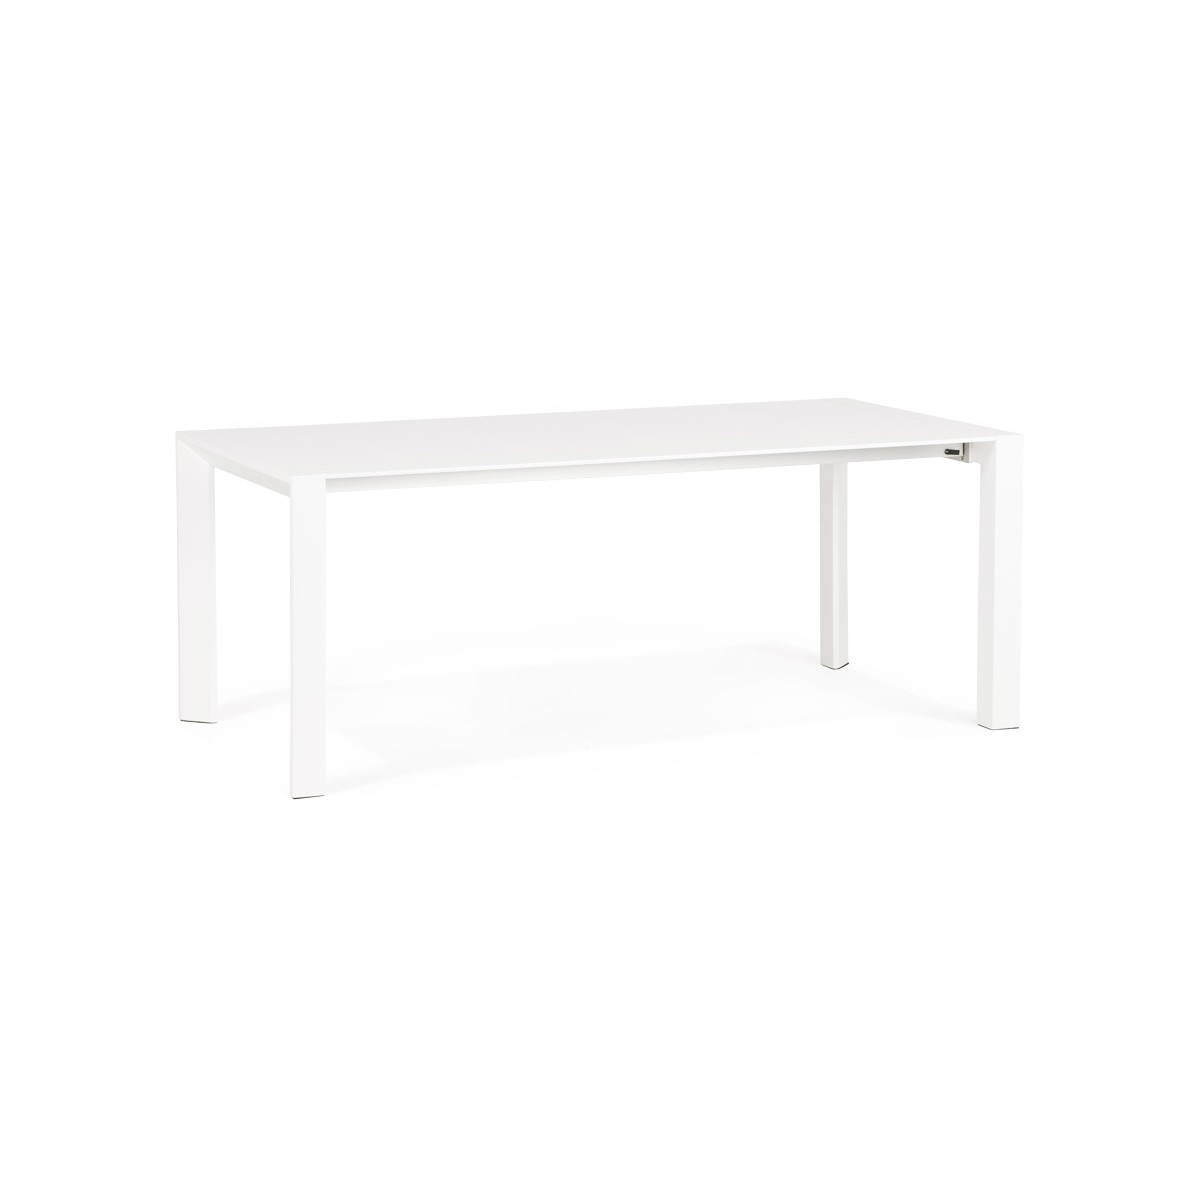 Table bois ikea rallonge for Ikea table rectangulaire